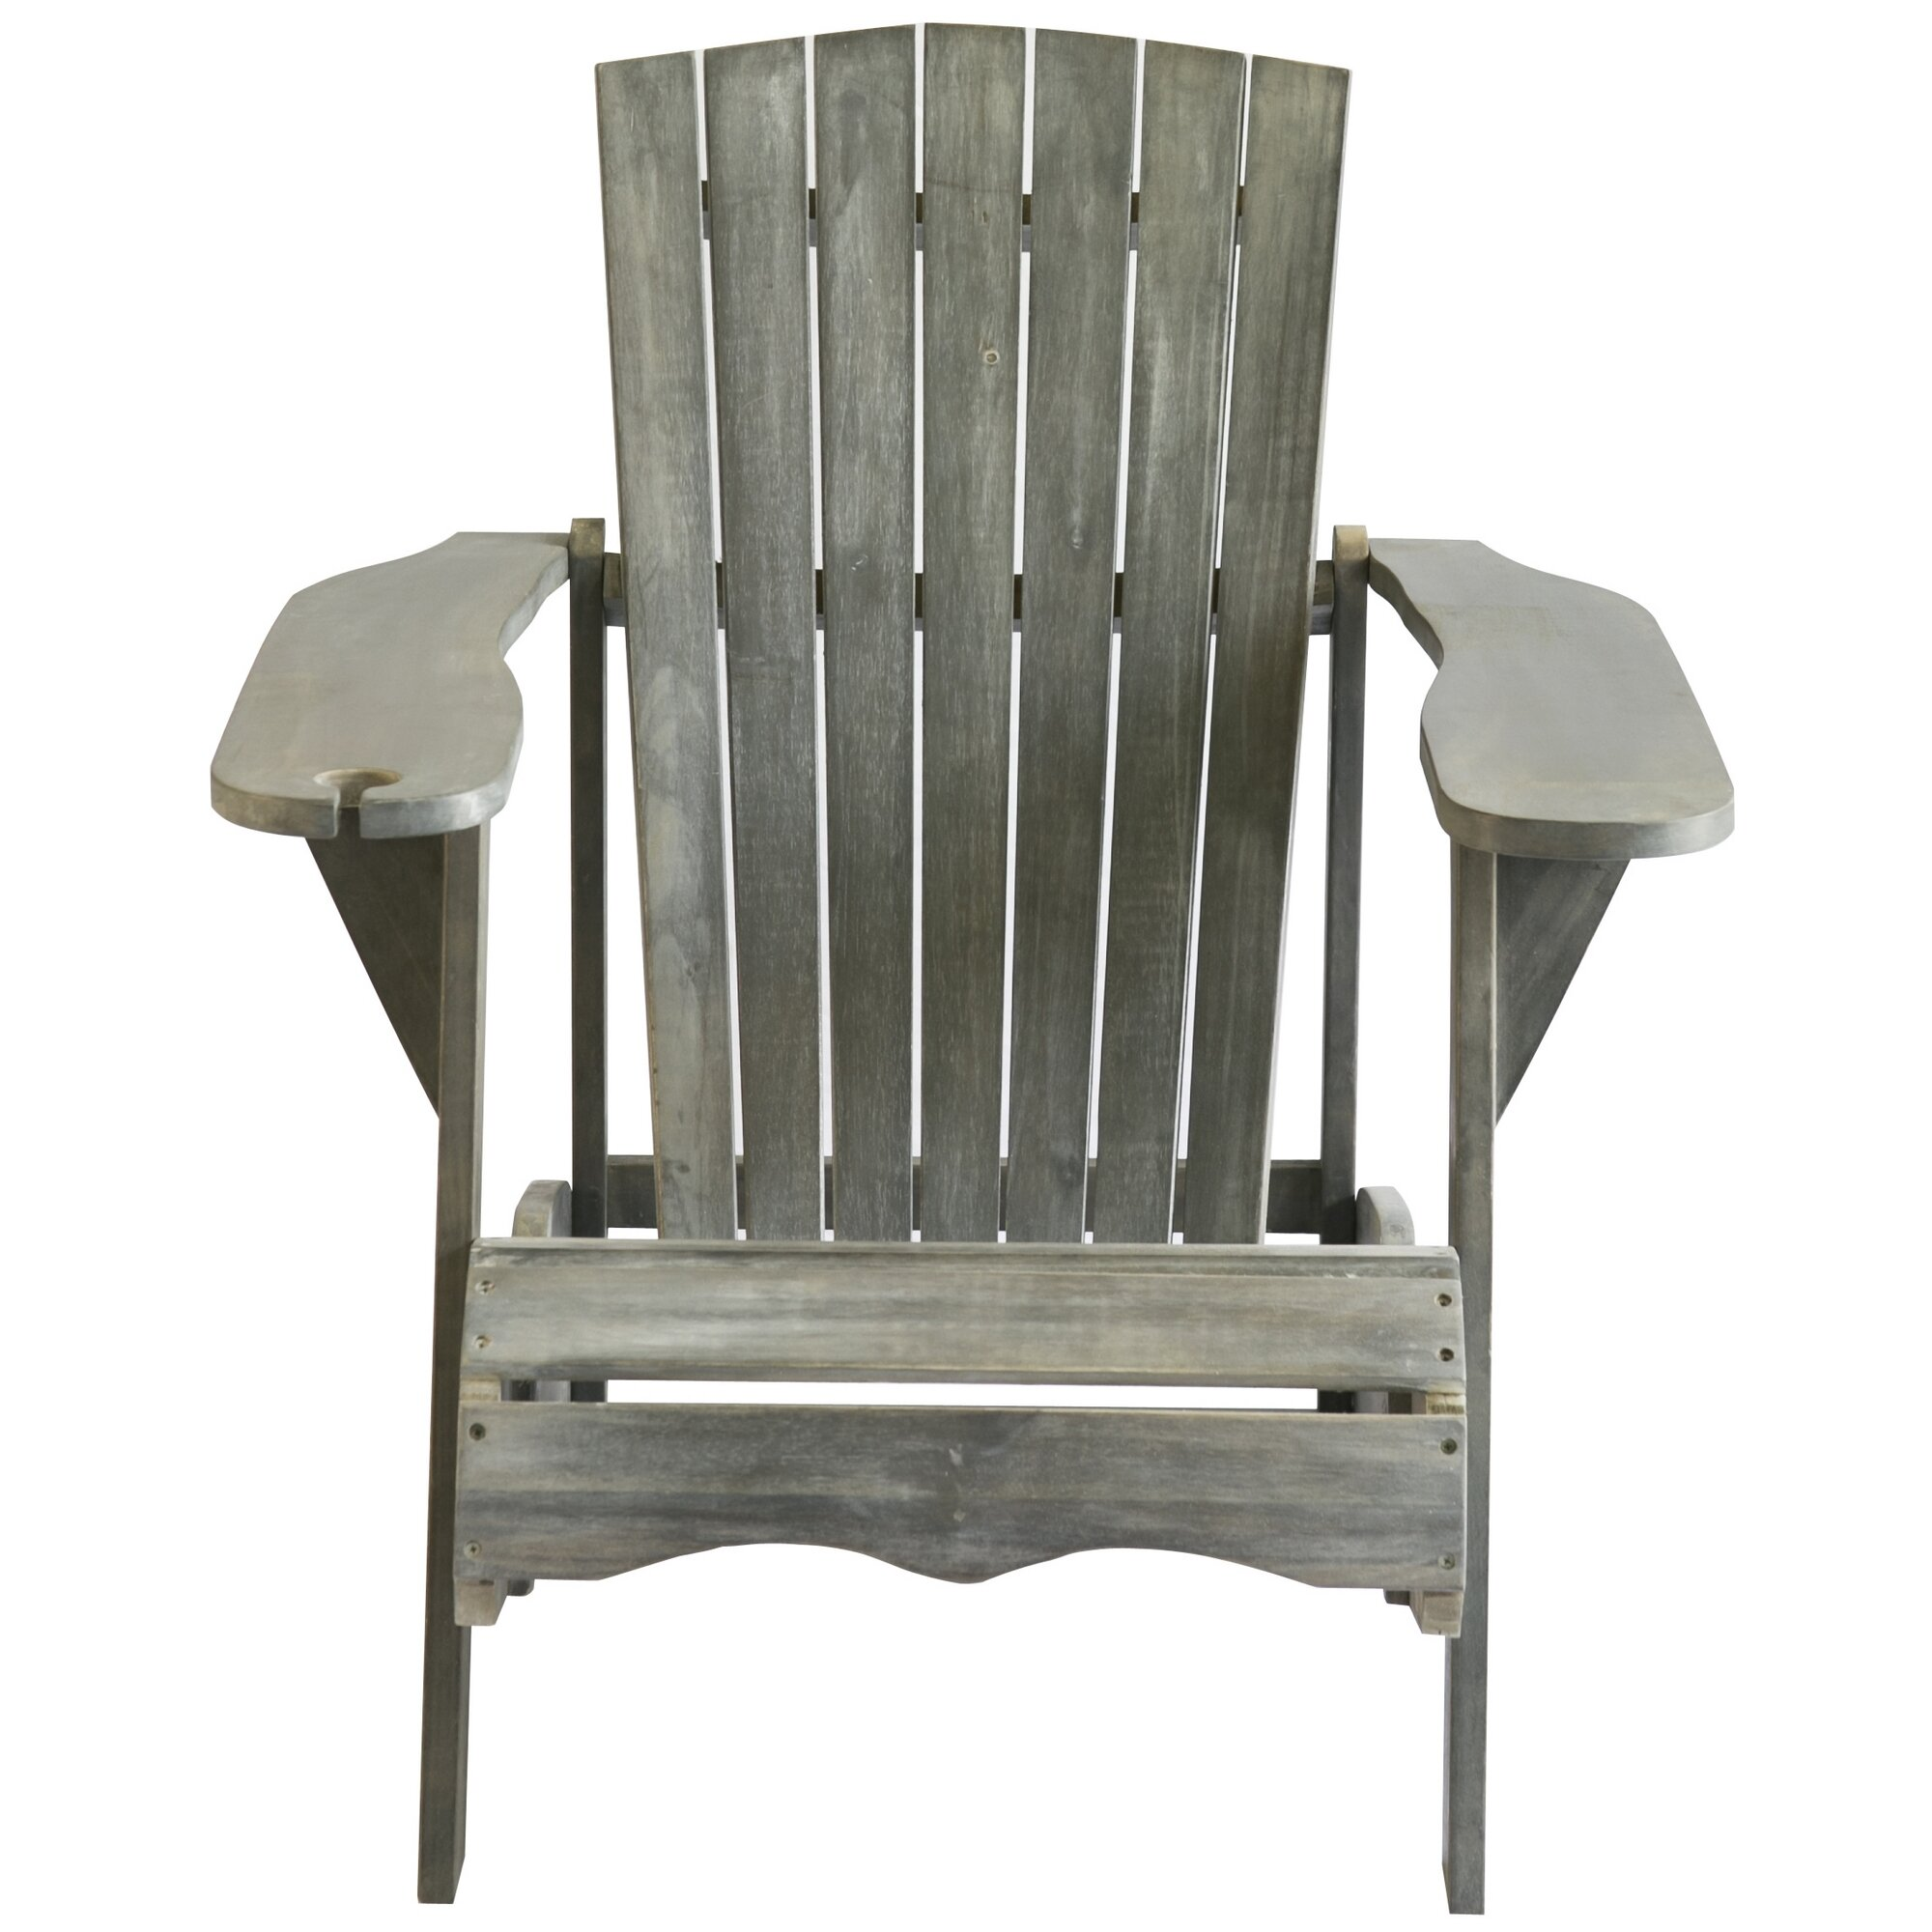 Beachcrest Home South Patrick Shores Wood Adirondack Chair